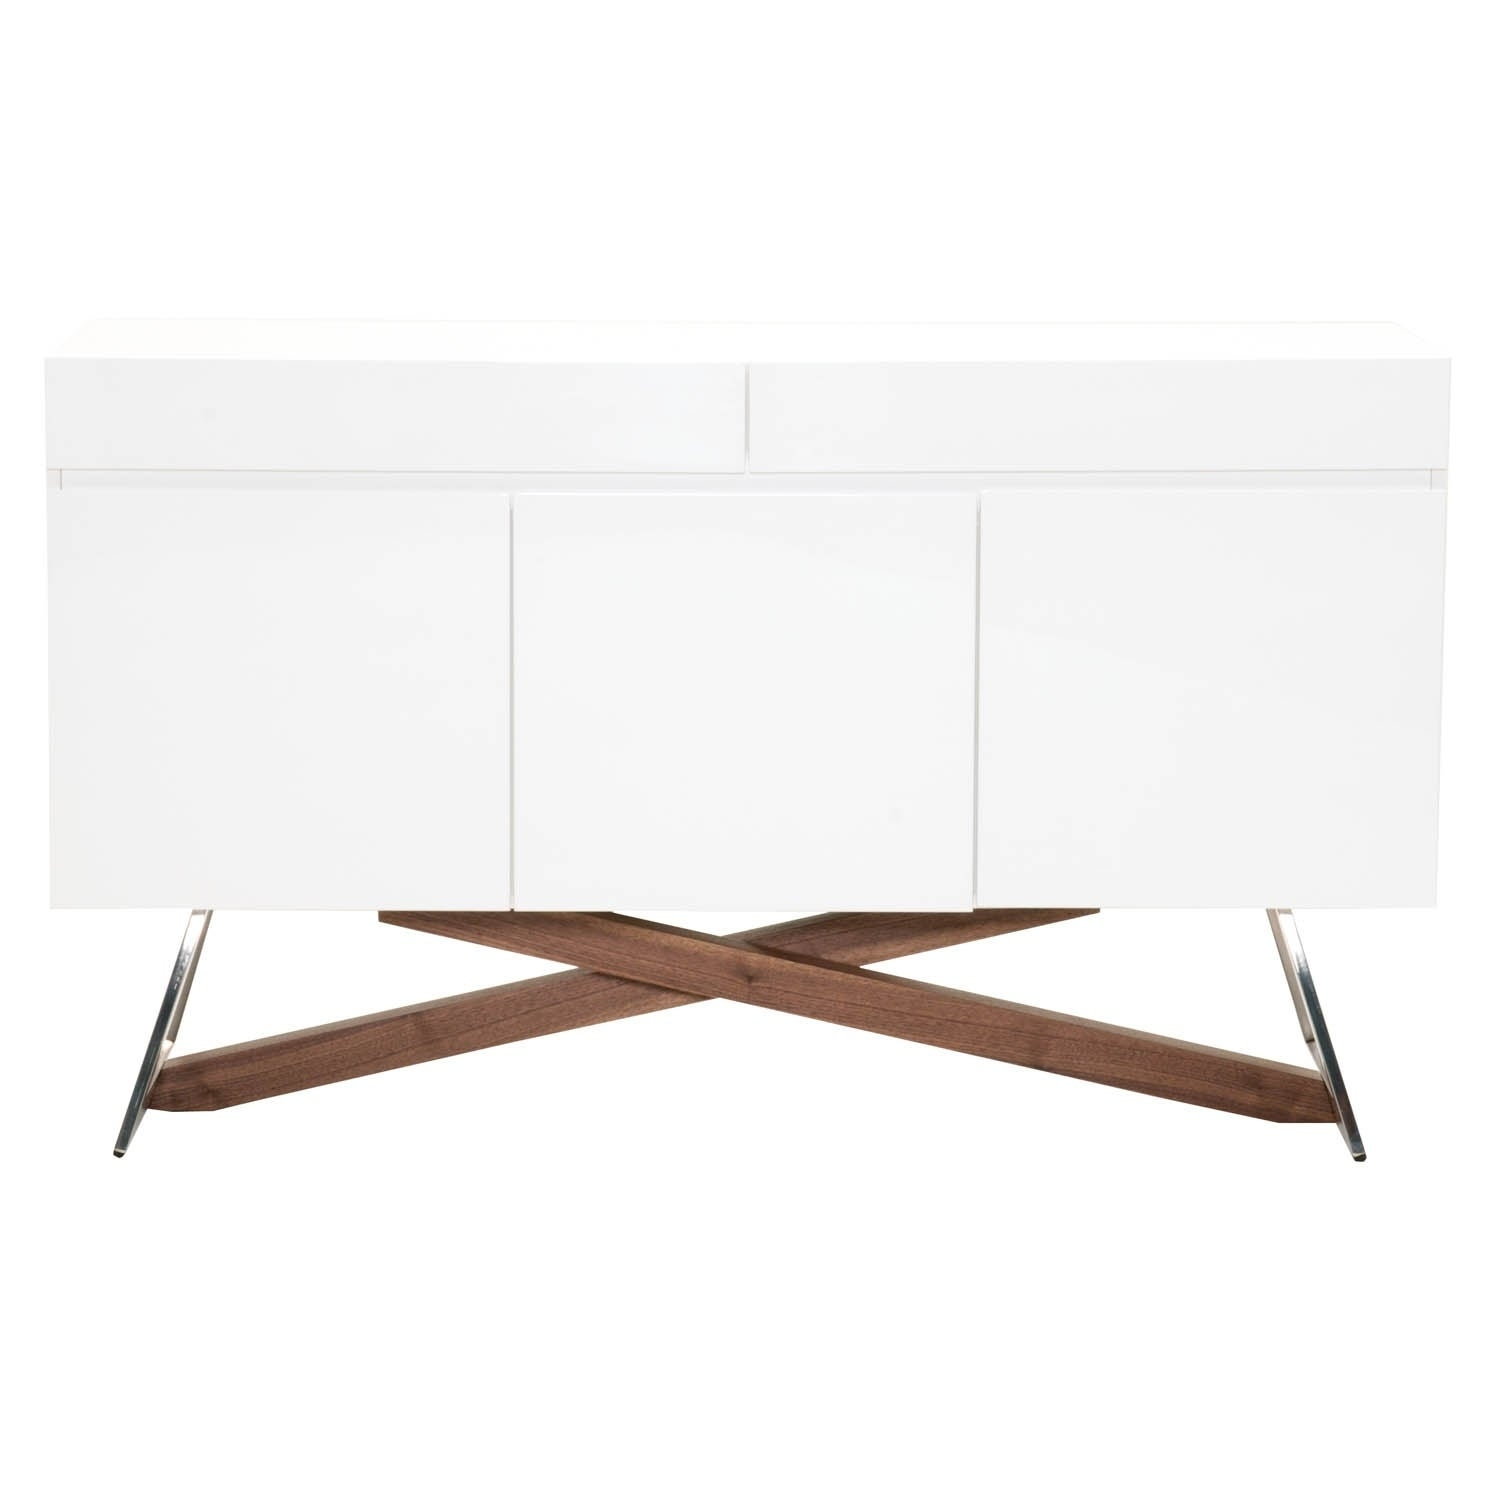 Details About Mid Century Modern Buffet With Wooden Base Glossy White And White With Regard To Mid Century Modern Glossy White Buffets (Gallery 1 of 30)